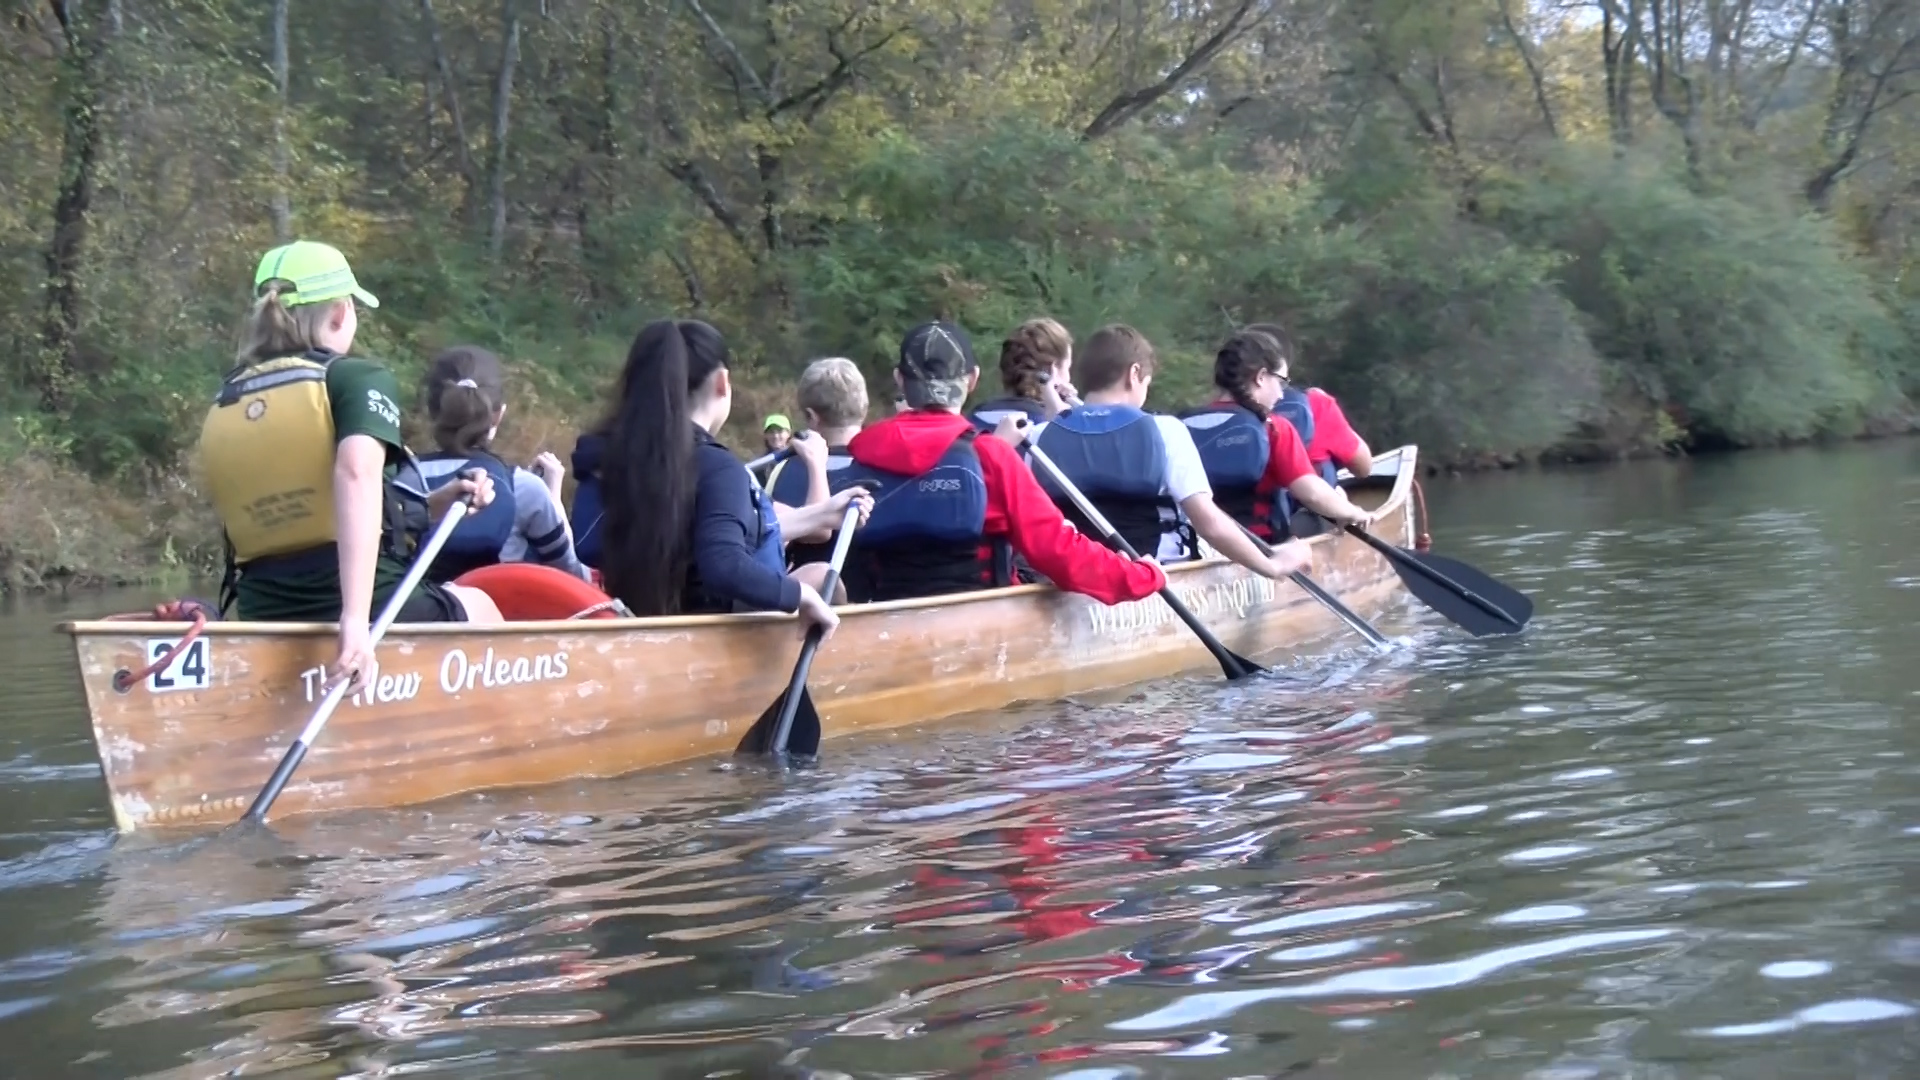 Students rowing on a canoe down a river